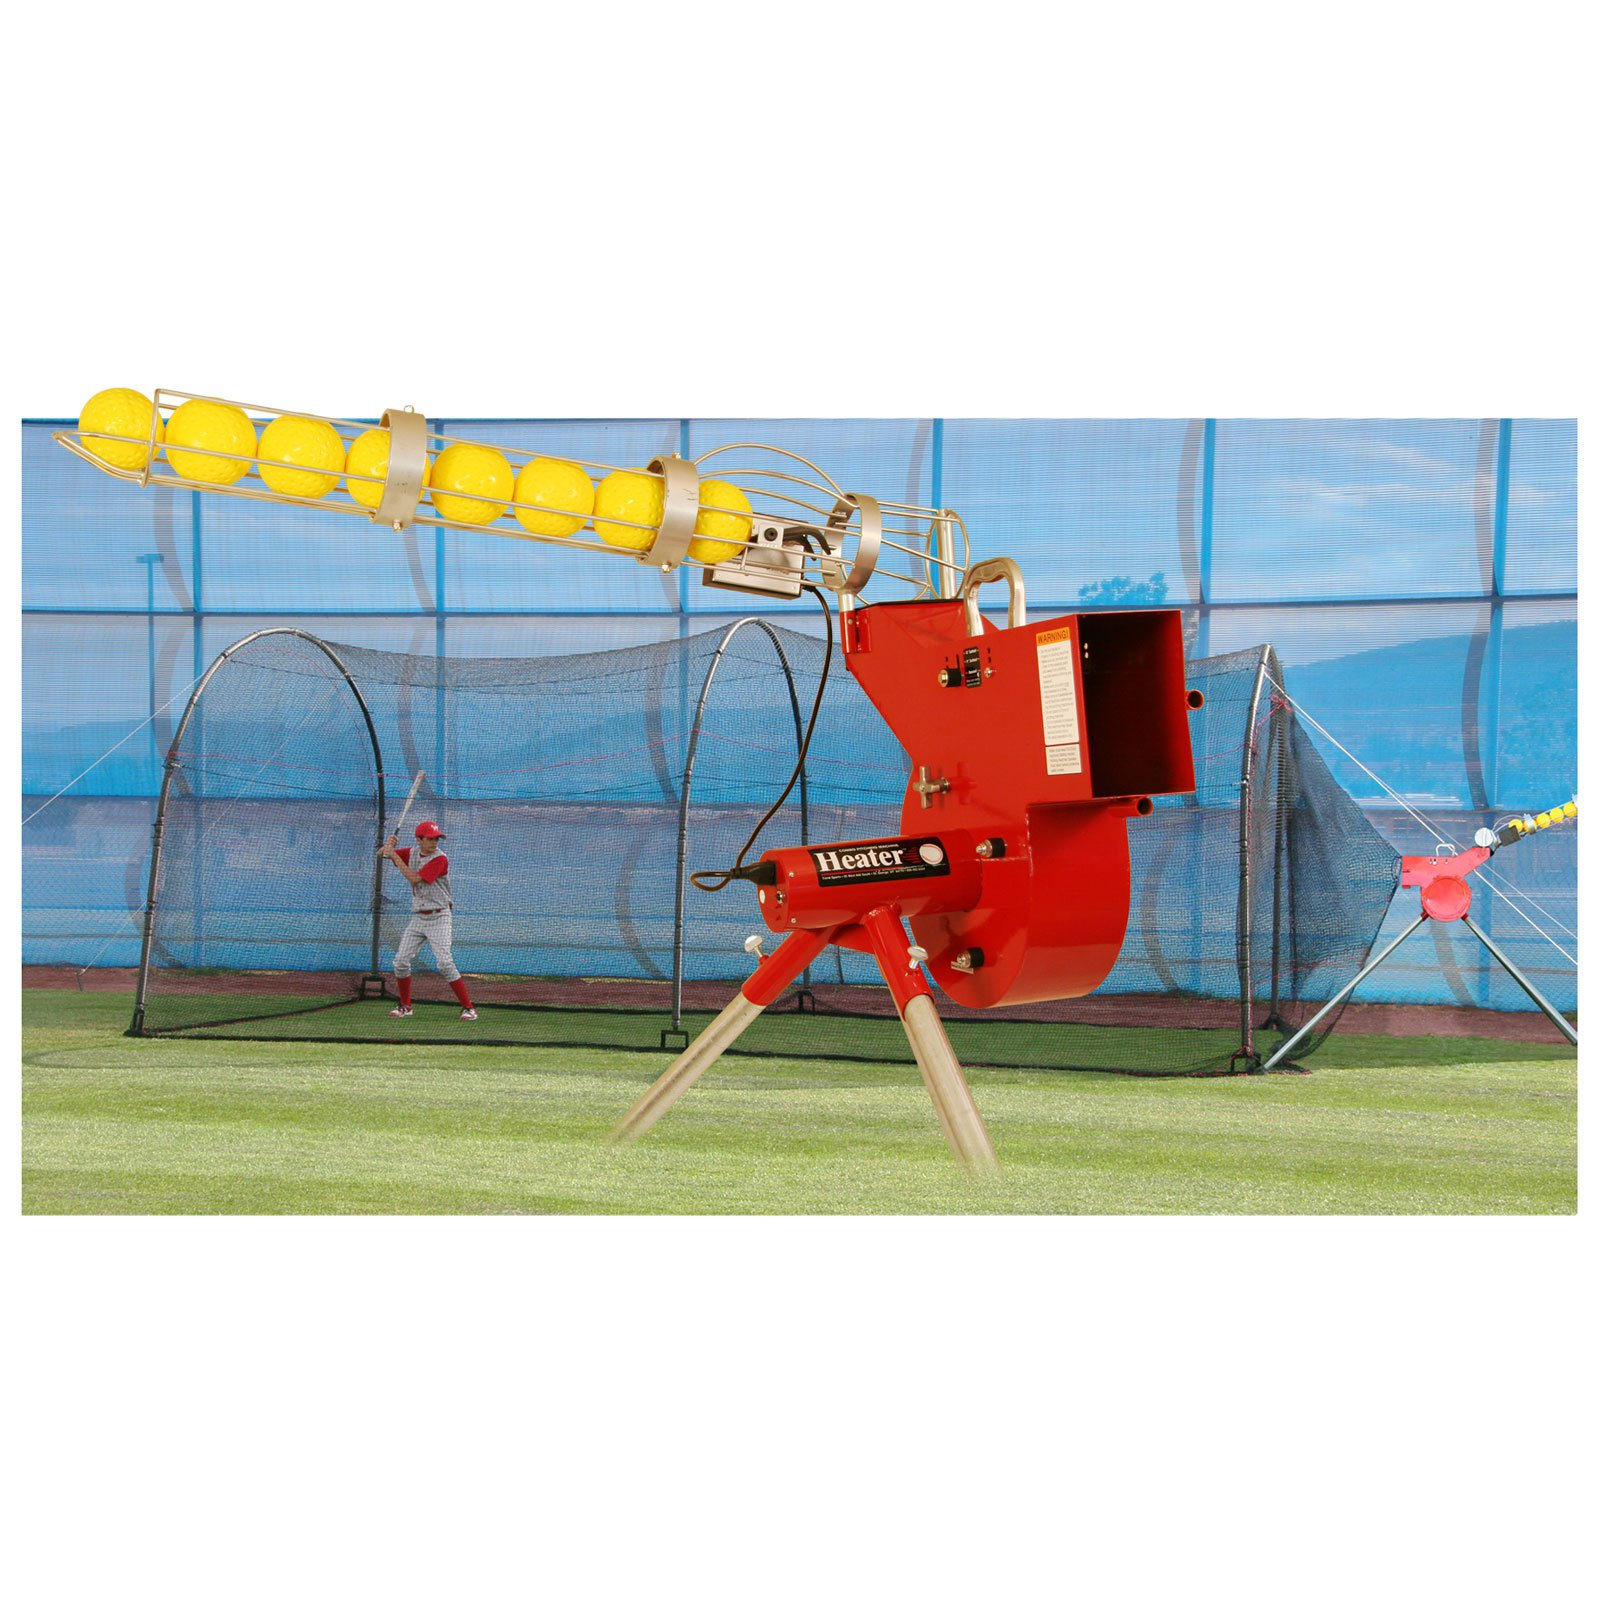 Heater Sports 24 ft. Combo Pitching Machine & Xtender Batting Cage Package